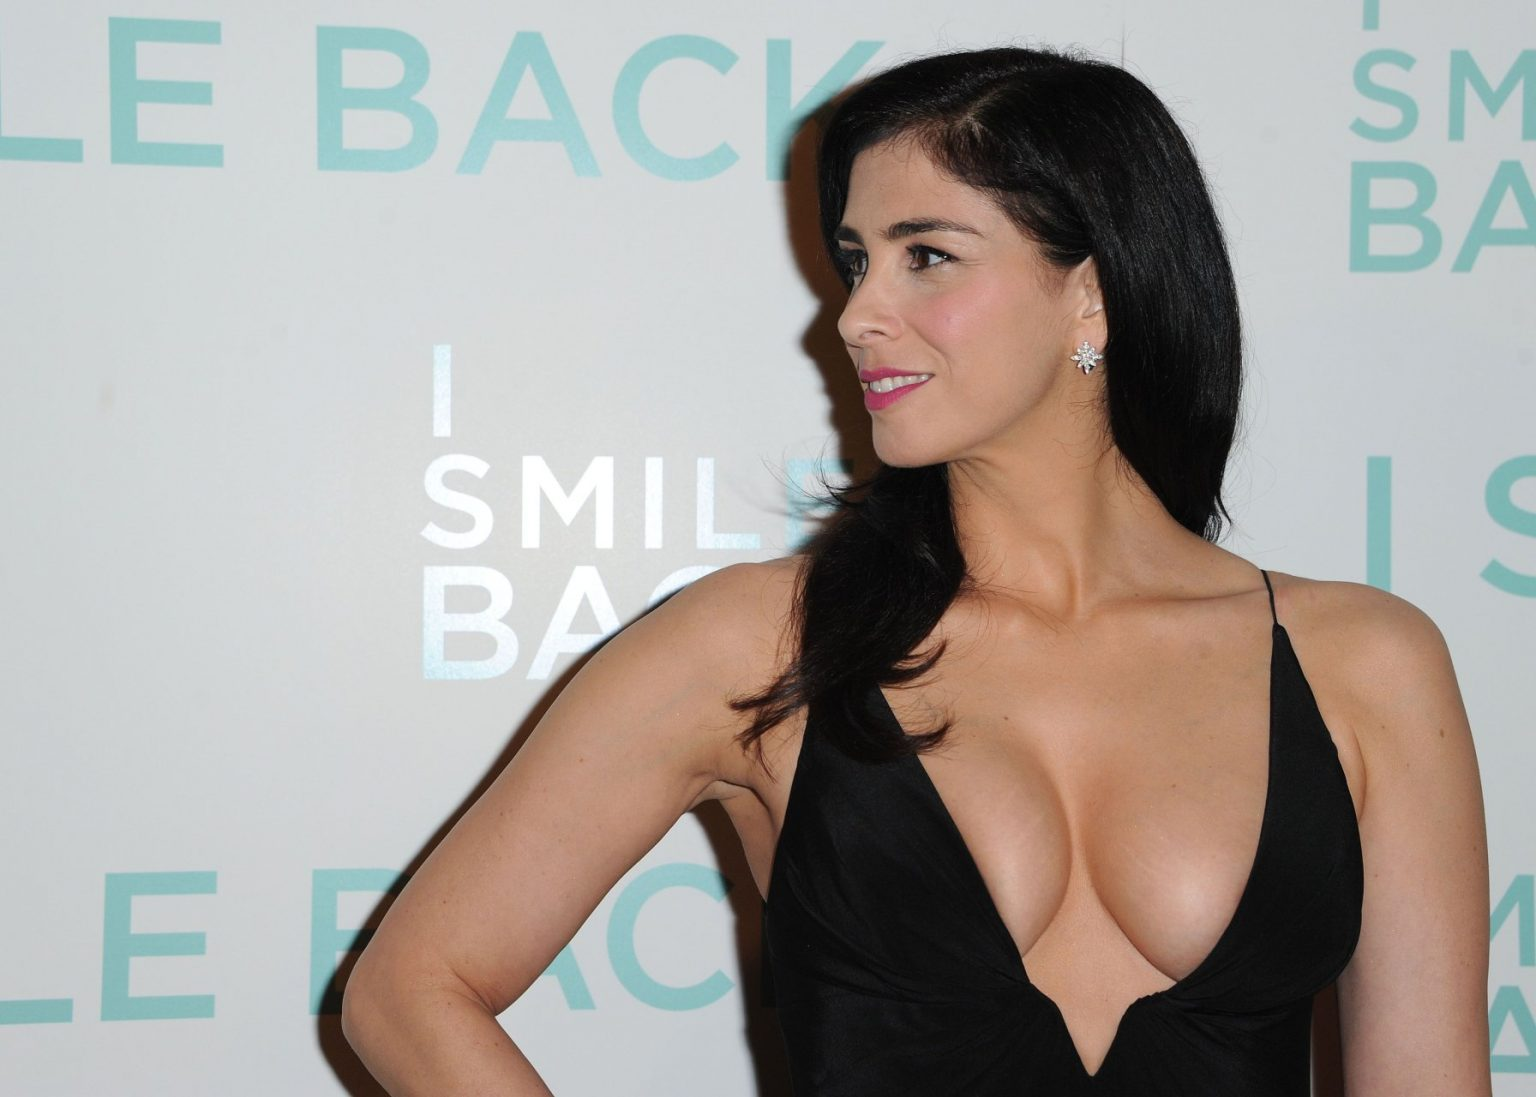 Seductive Sarah Silverman Proudly Shows Her Boobs in a Revealing Dress | #TheFappening Girls